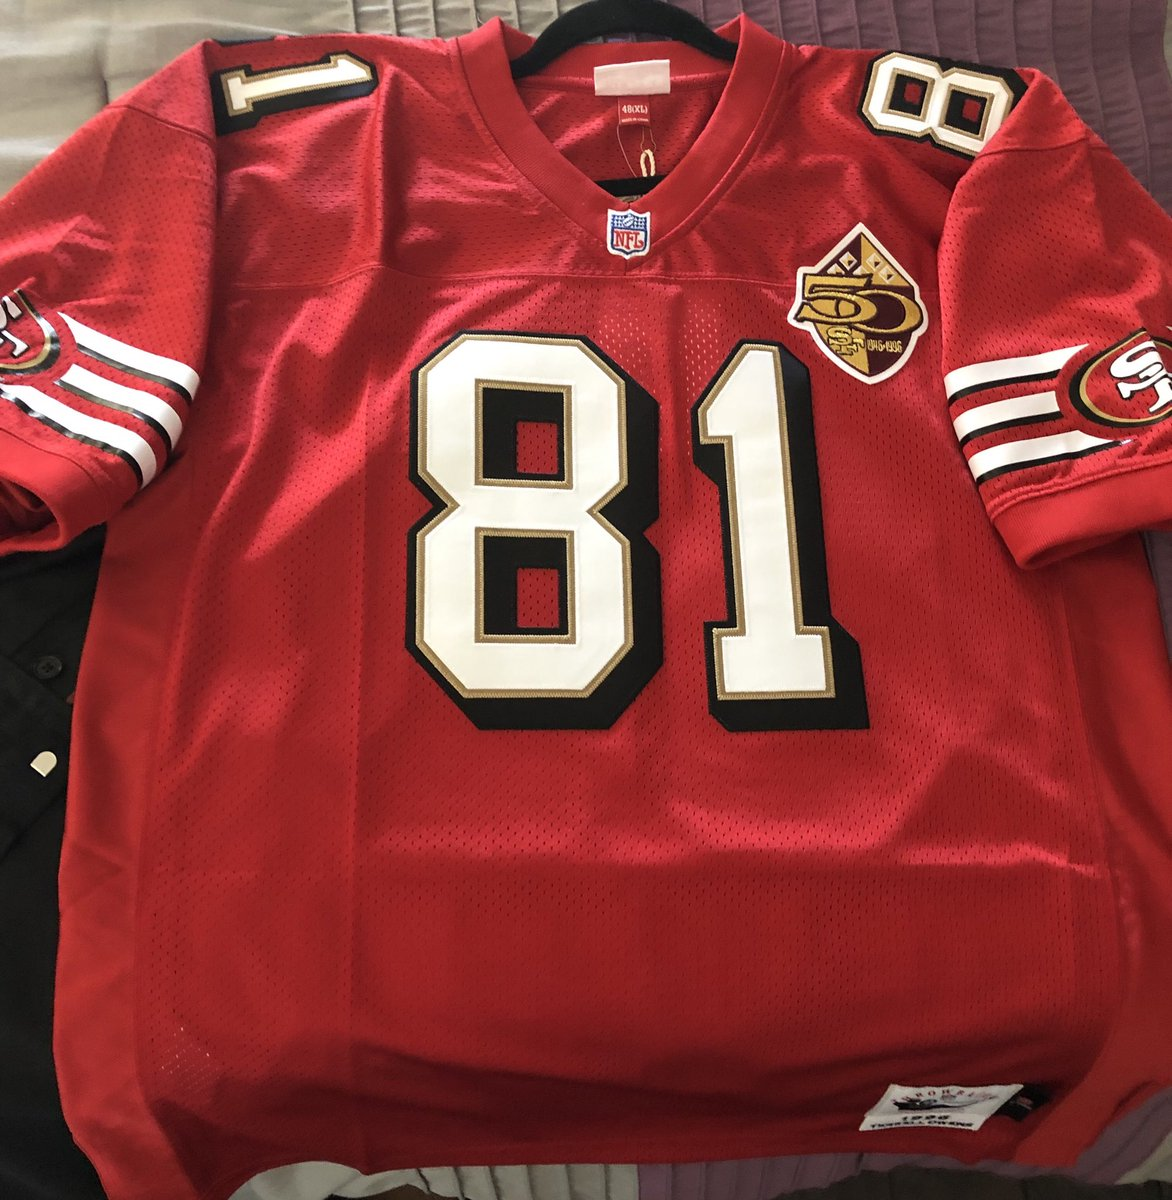 Look what UPS just dropped off. #49ers <br>http://pic.twitter.com/umuXaC4MaY